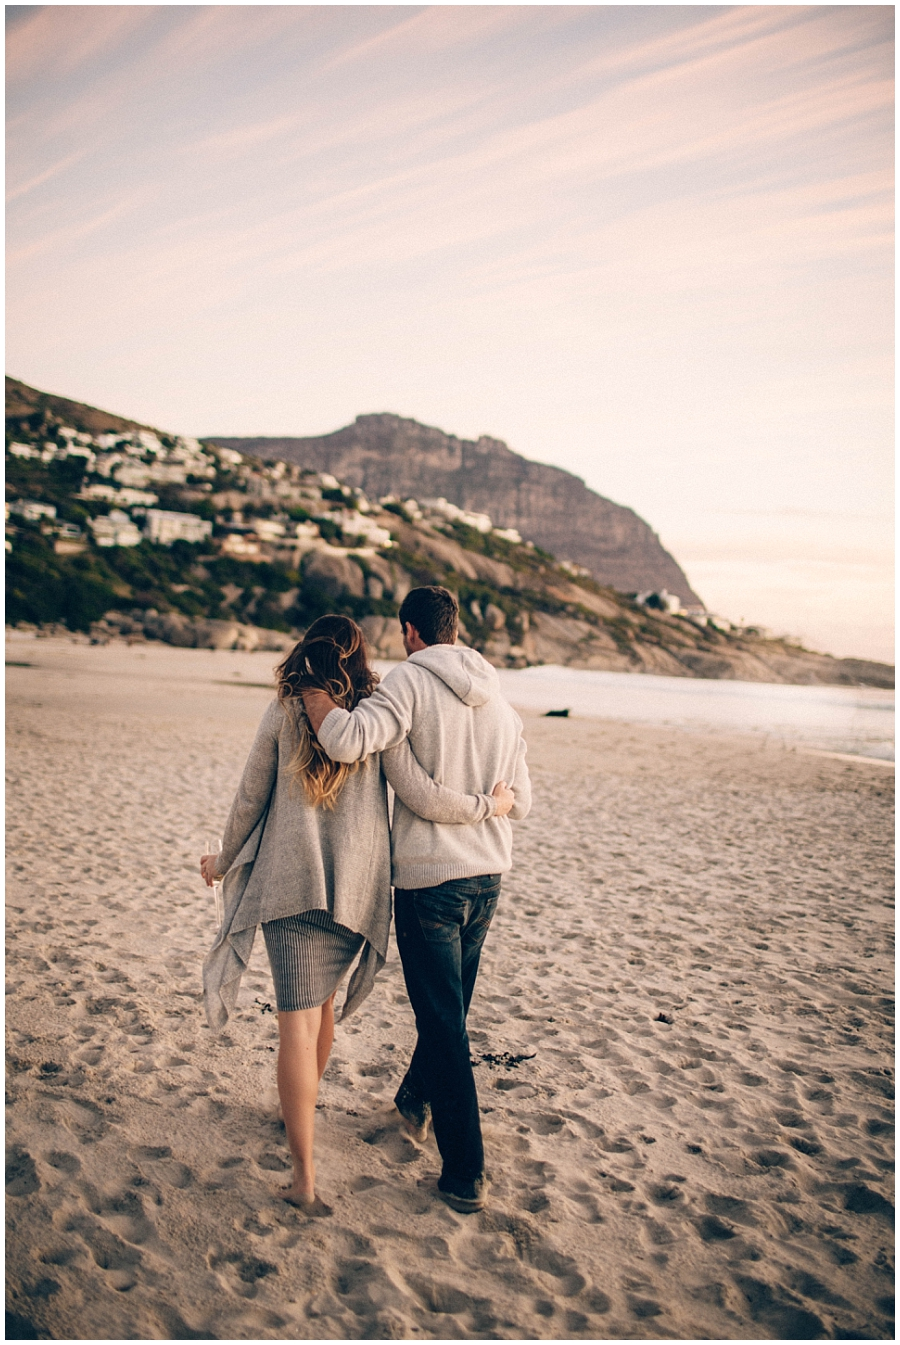 Ronel Kruger Cape Town Wedding and Lifestyle Photographer_8145.jpg